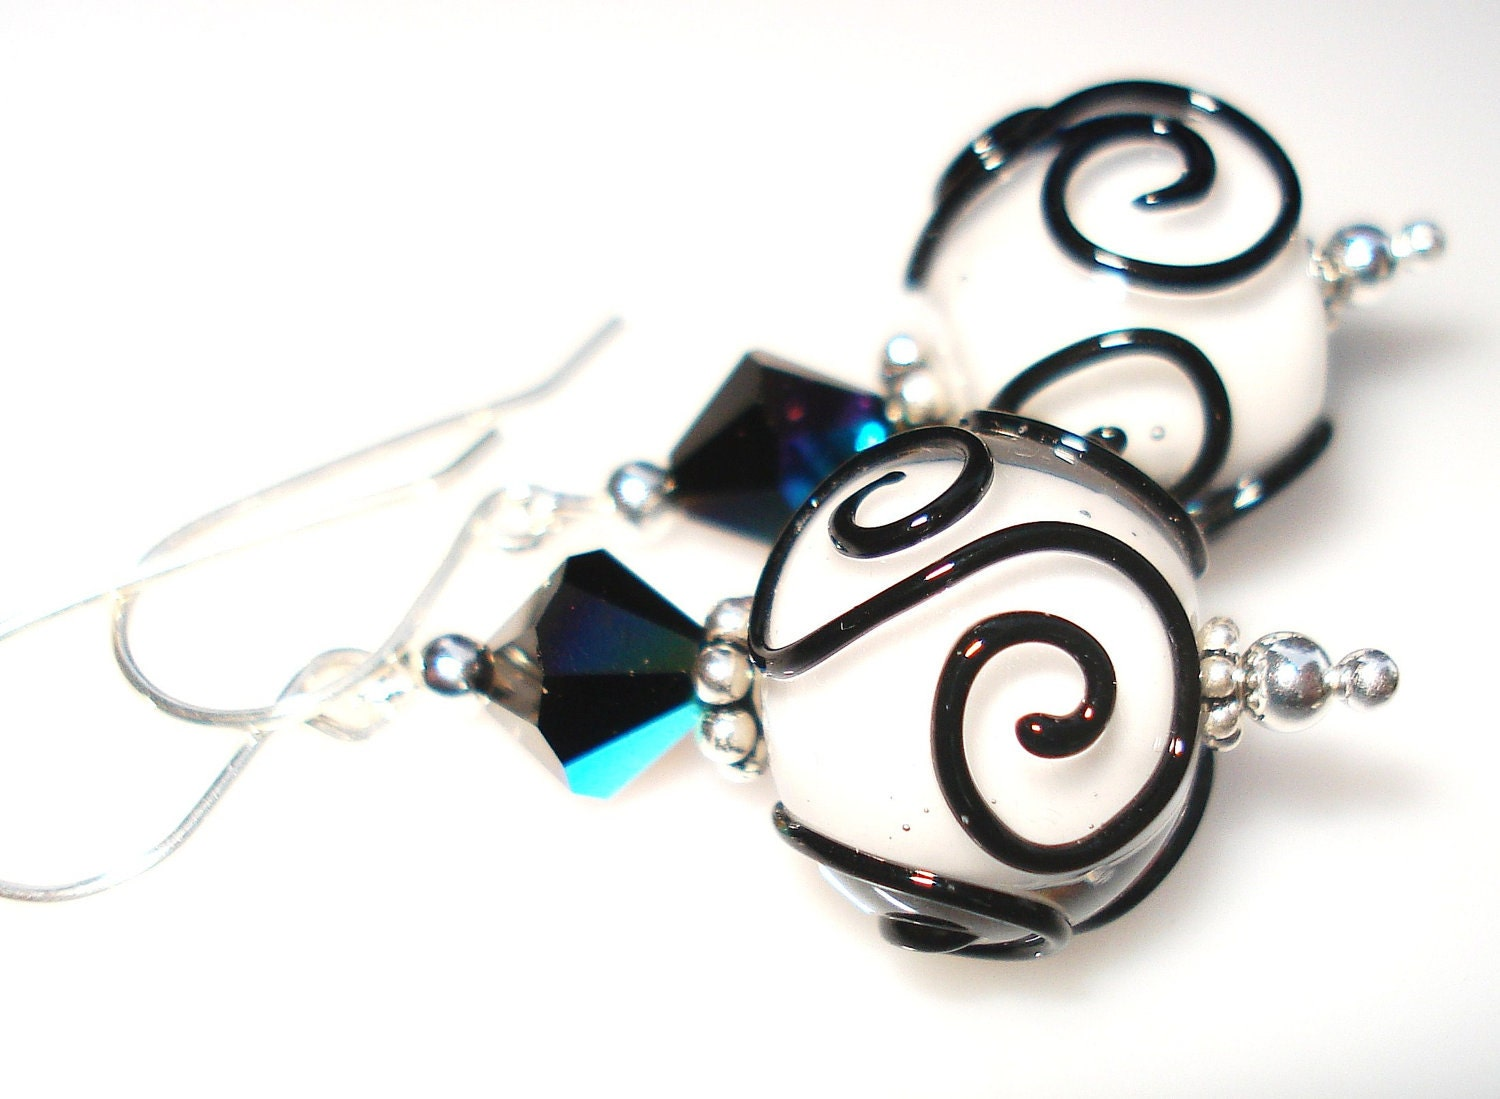 A Black Tie Affair, Handcrafted Jewelry, Handmade Earrings with White Glass Lampwork Beads and Black Scrolls, Sterling Silver